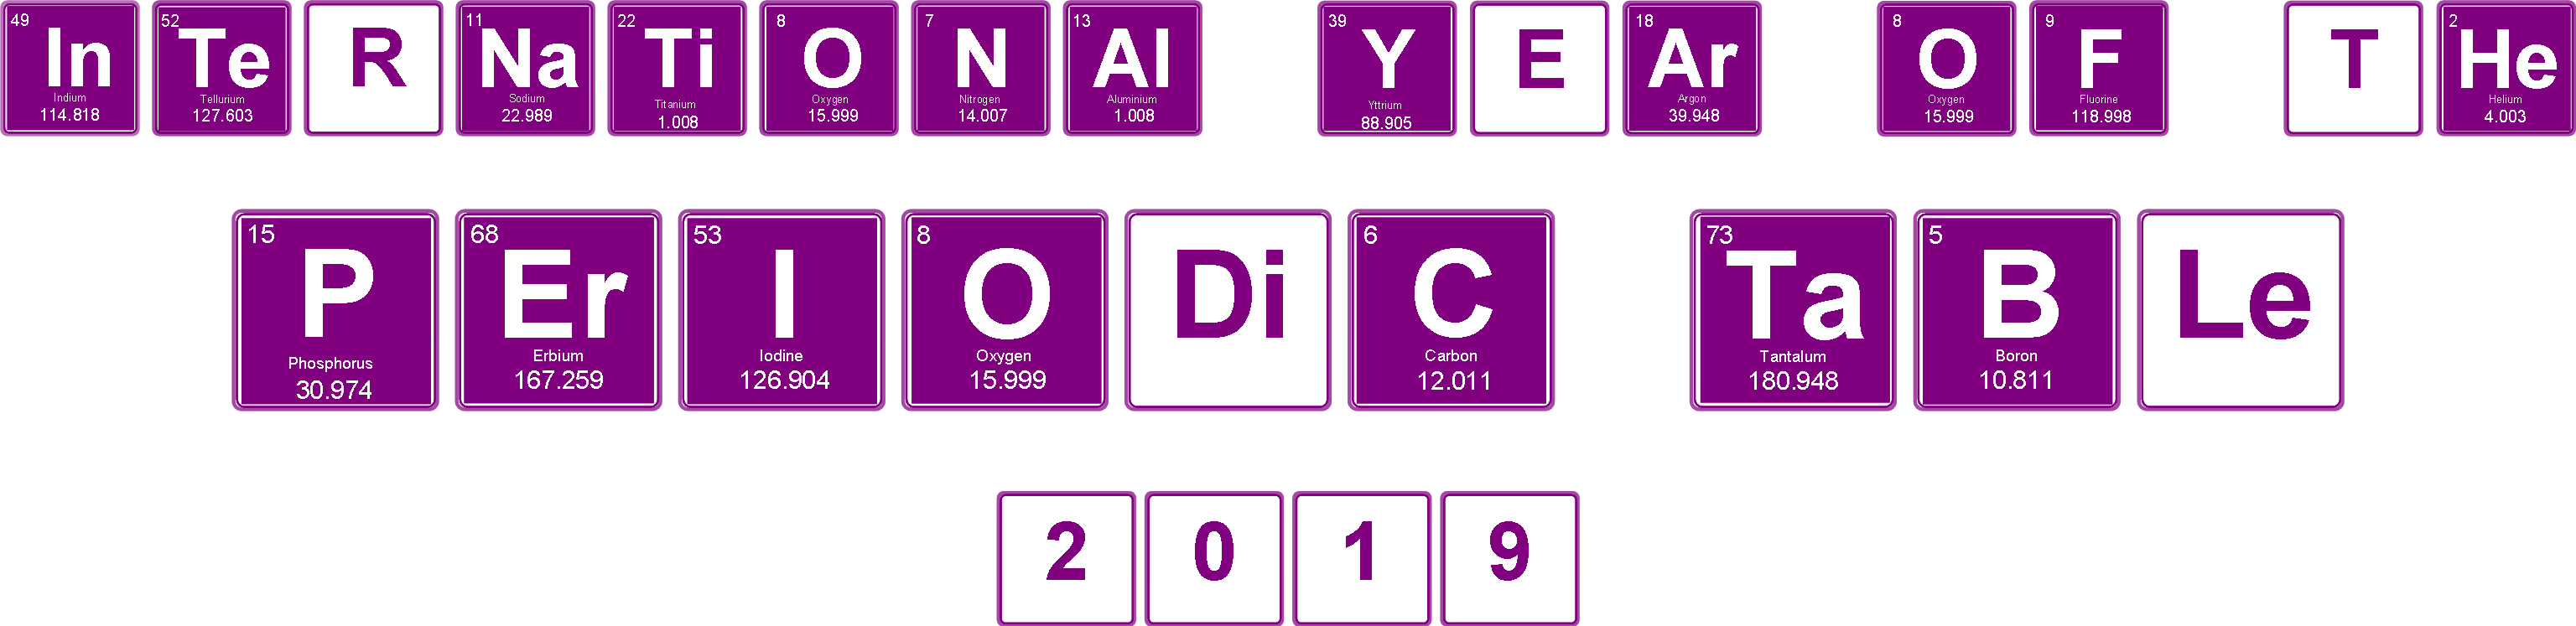 Inorganic Chemistry, the Periodic Table and Life: copper as a case